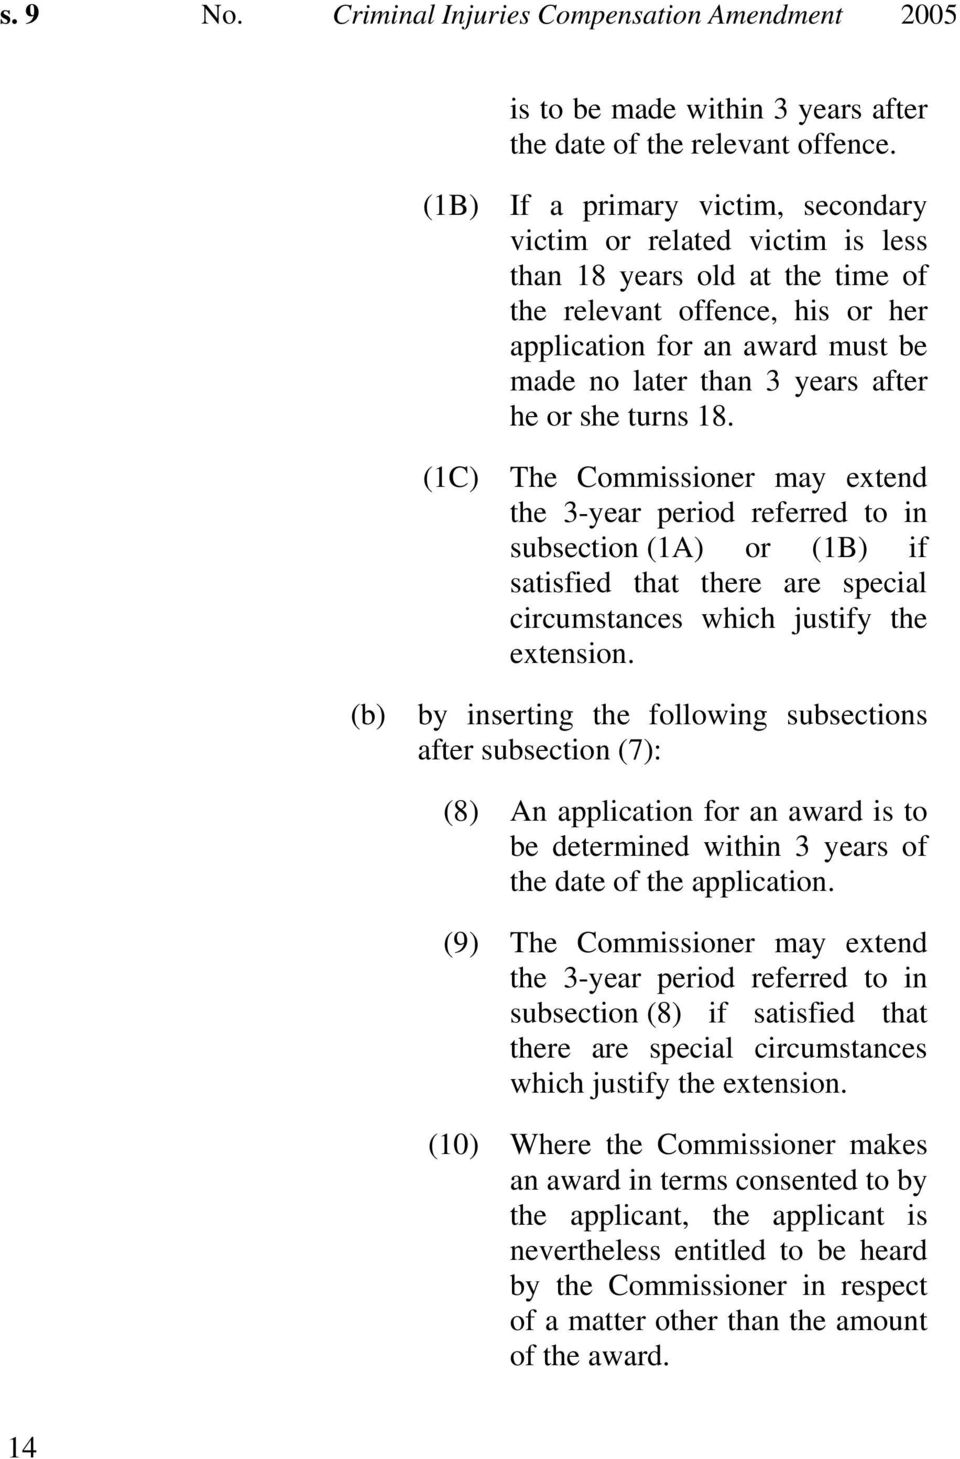 after he or she turns 18. (1C) The Commissioner may extend the 3-year period referred to in subsection (1A) or (1B) if satisfied that there are special circumstances which justify the extension.